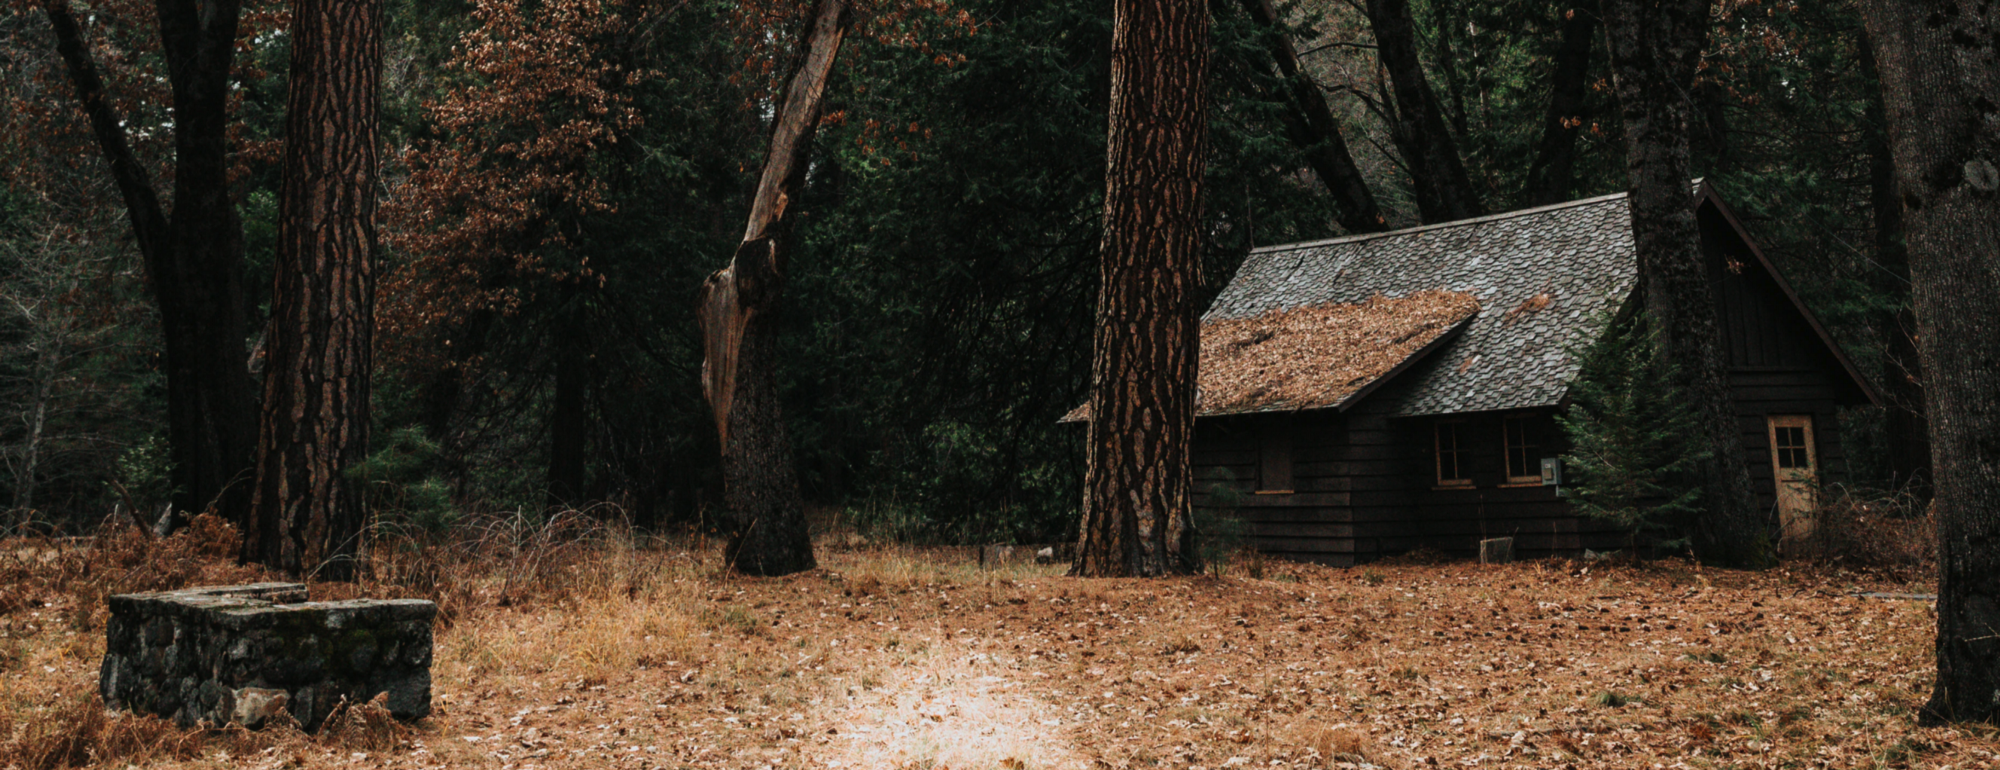 Creepy cabin in the woods. Setting an alternative stage for Goldilocks to make a point about decision intelligence.